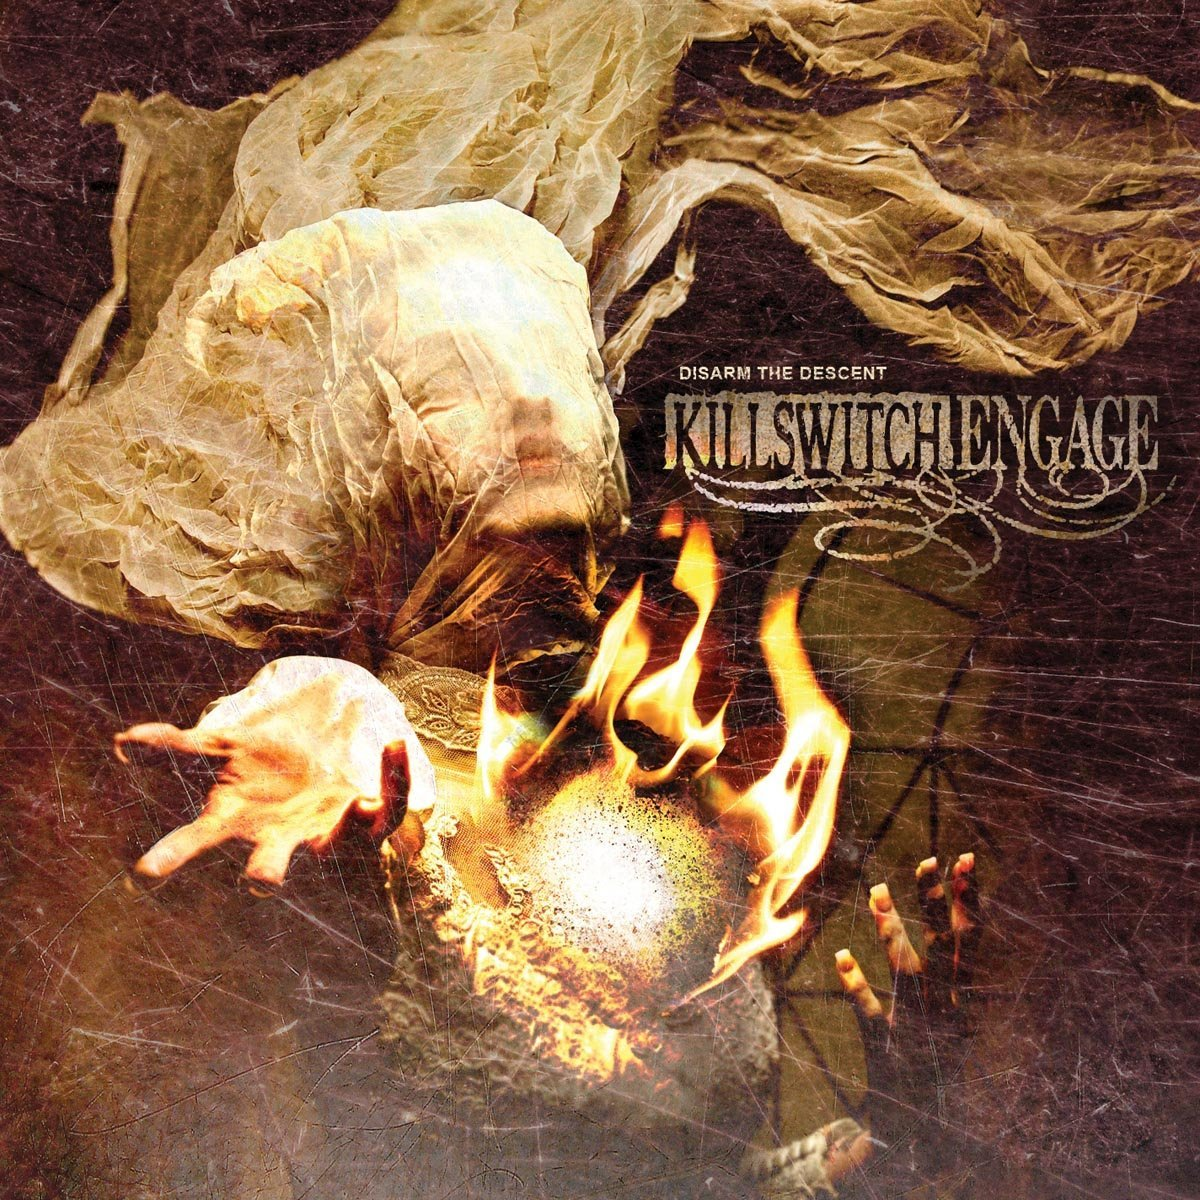 Killswitch-Engage-Disarm-The-Descent-LP-78754